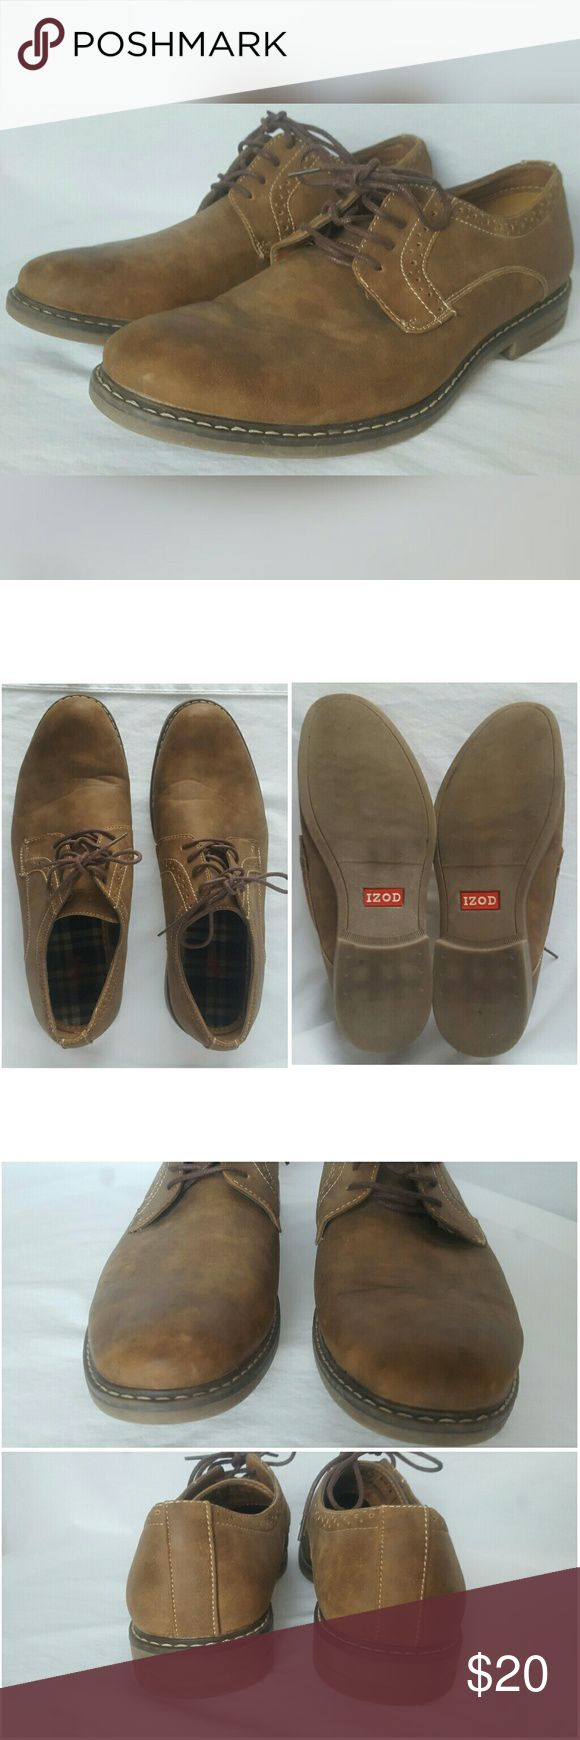 "Men's Brown Oxford Lace Up Shoes - IZOD ""Chad"" IZOD ""Chad"" Lace up Oxford Shoes - Men's Size 11M - Brown - Not in original box - Excellent Condition, very light signs of wear.  💜ALL OFFERS CONSIDERED💜 Izod Shoes Oxfords & Derbys"